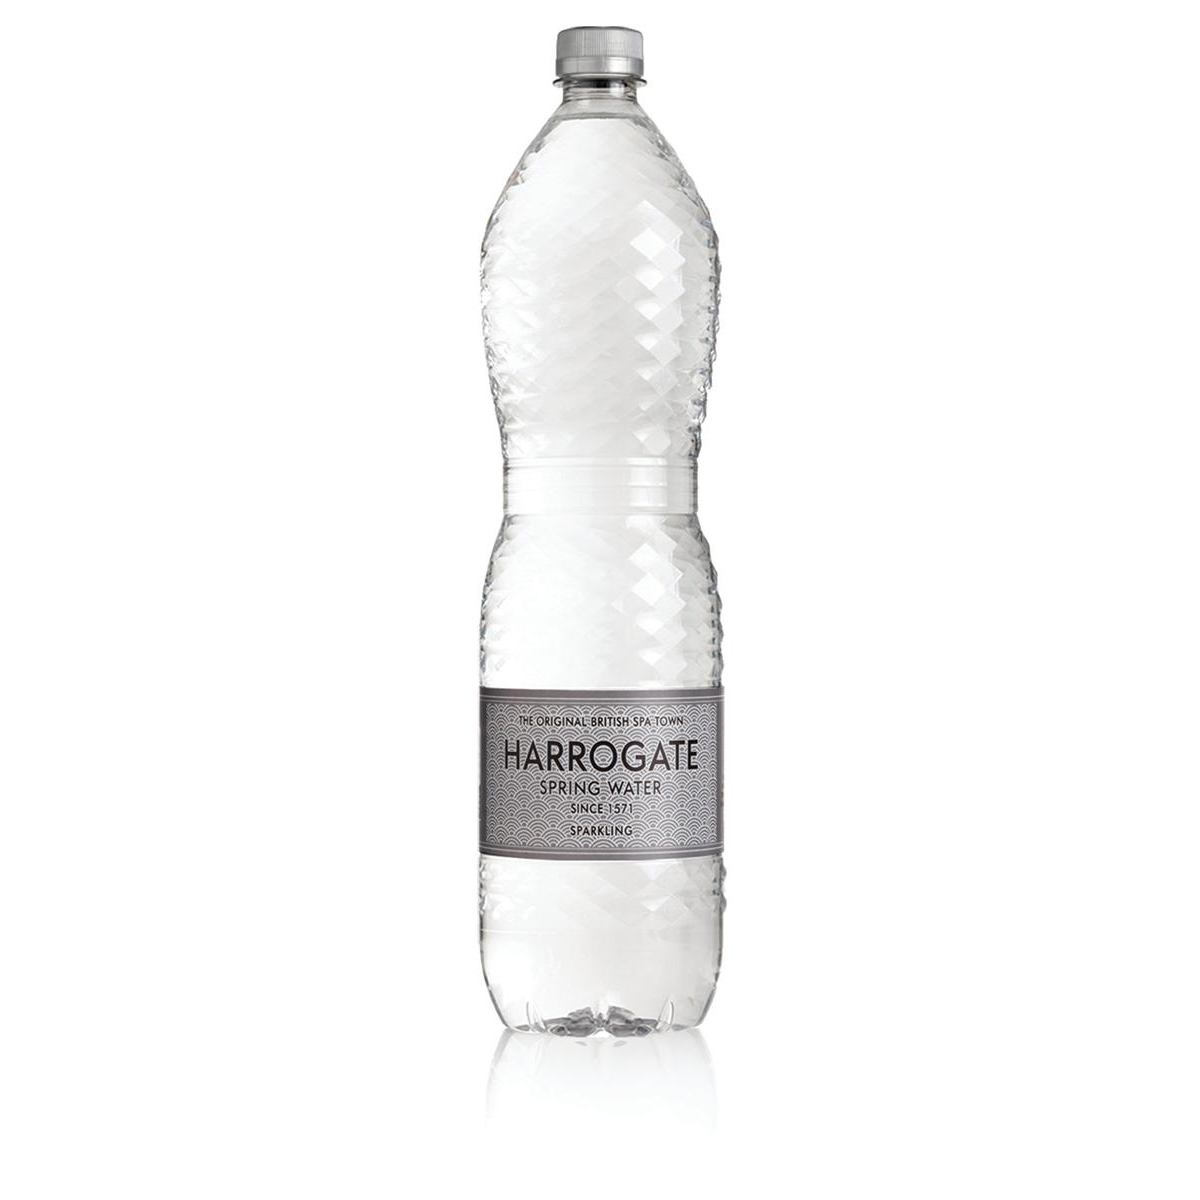 Harrogate Sparkling Water Plastic Bottle 1.5 litres Ref P150122C [Pack 12]